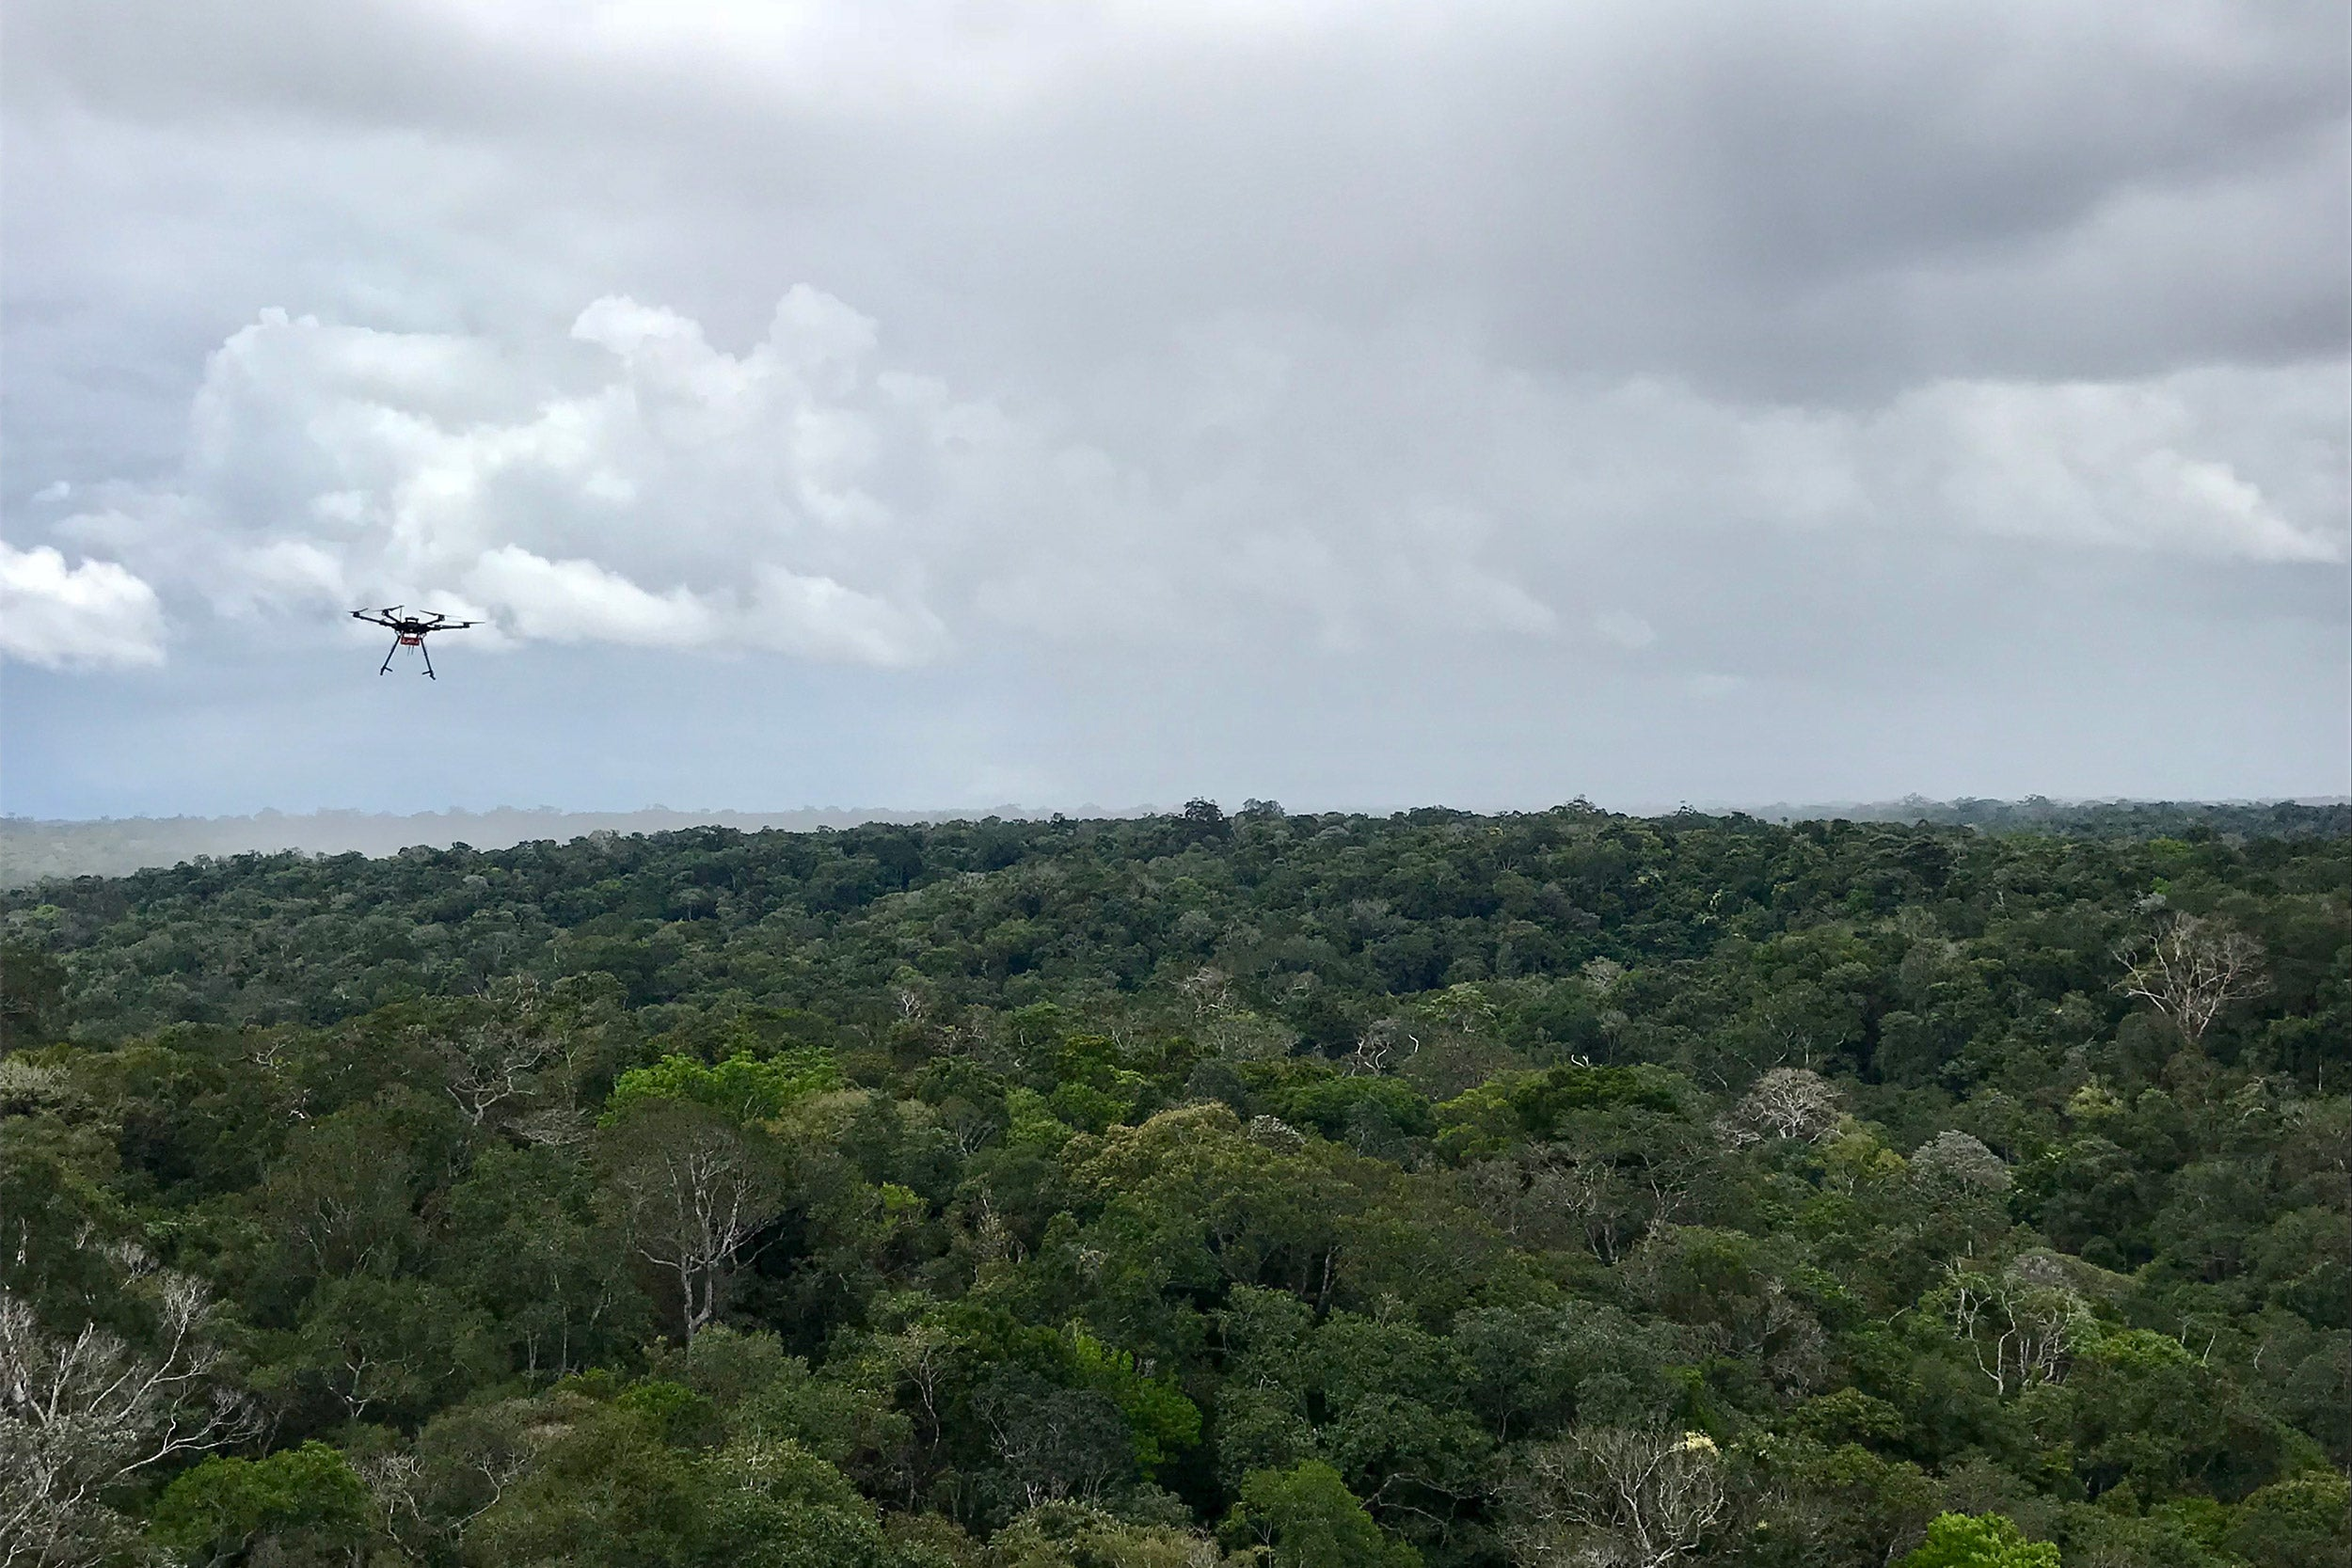 Drone-based monitoring system reveals important information on the health of the Amazon - Harvard Gazette